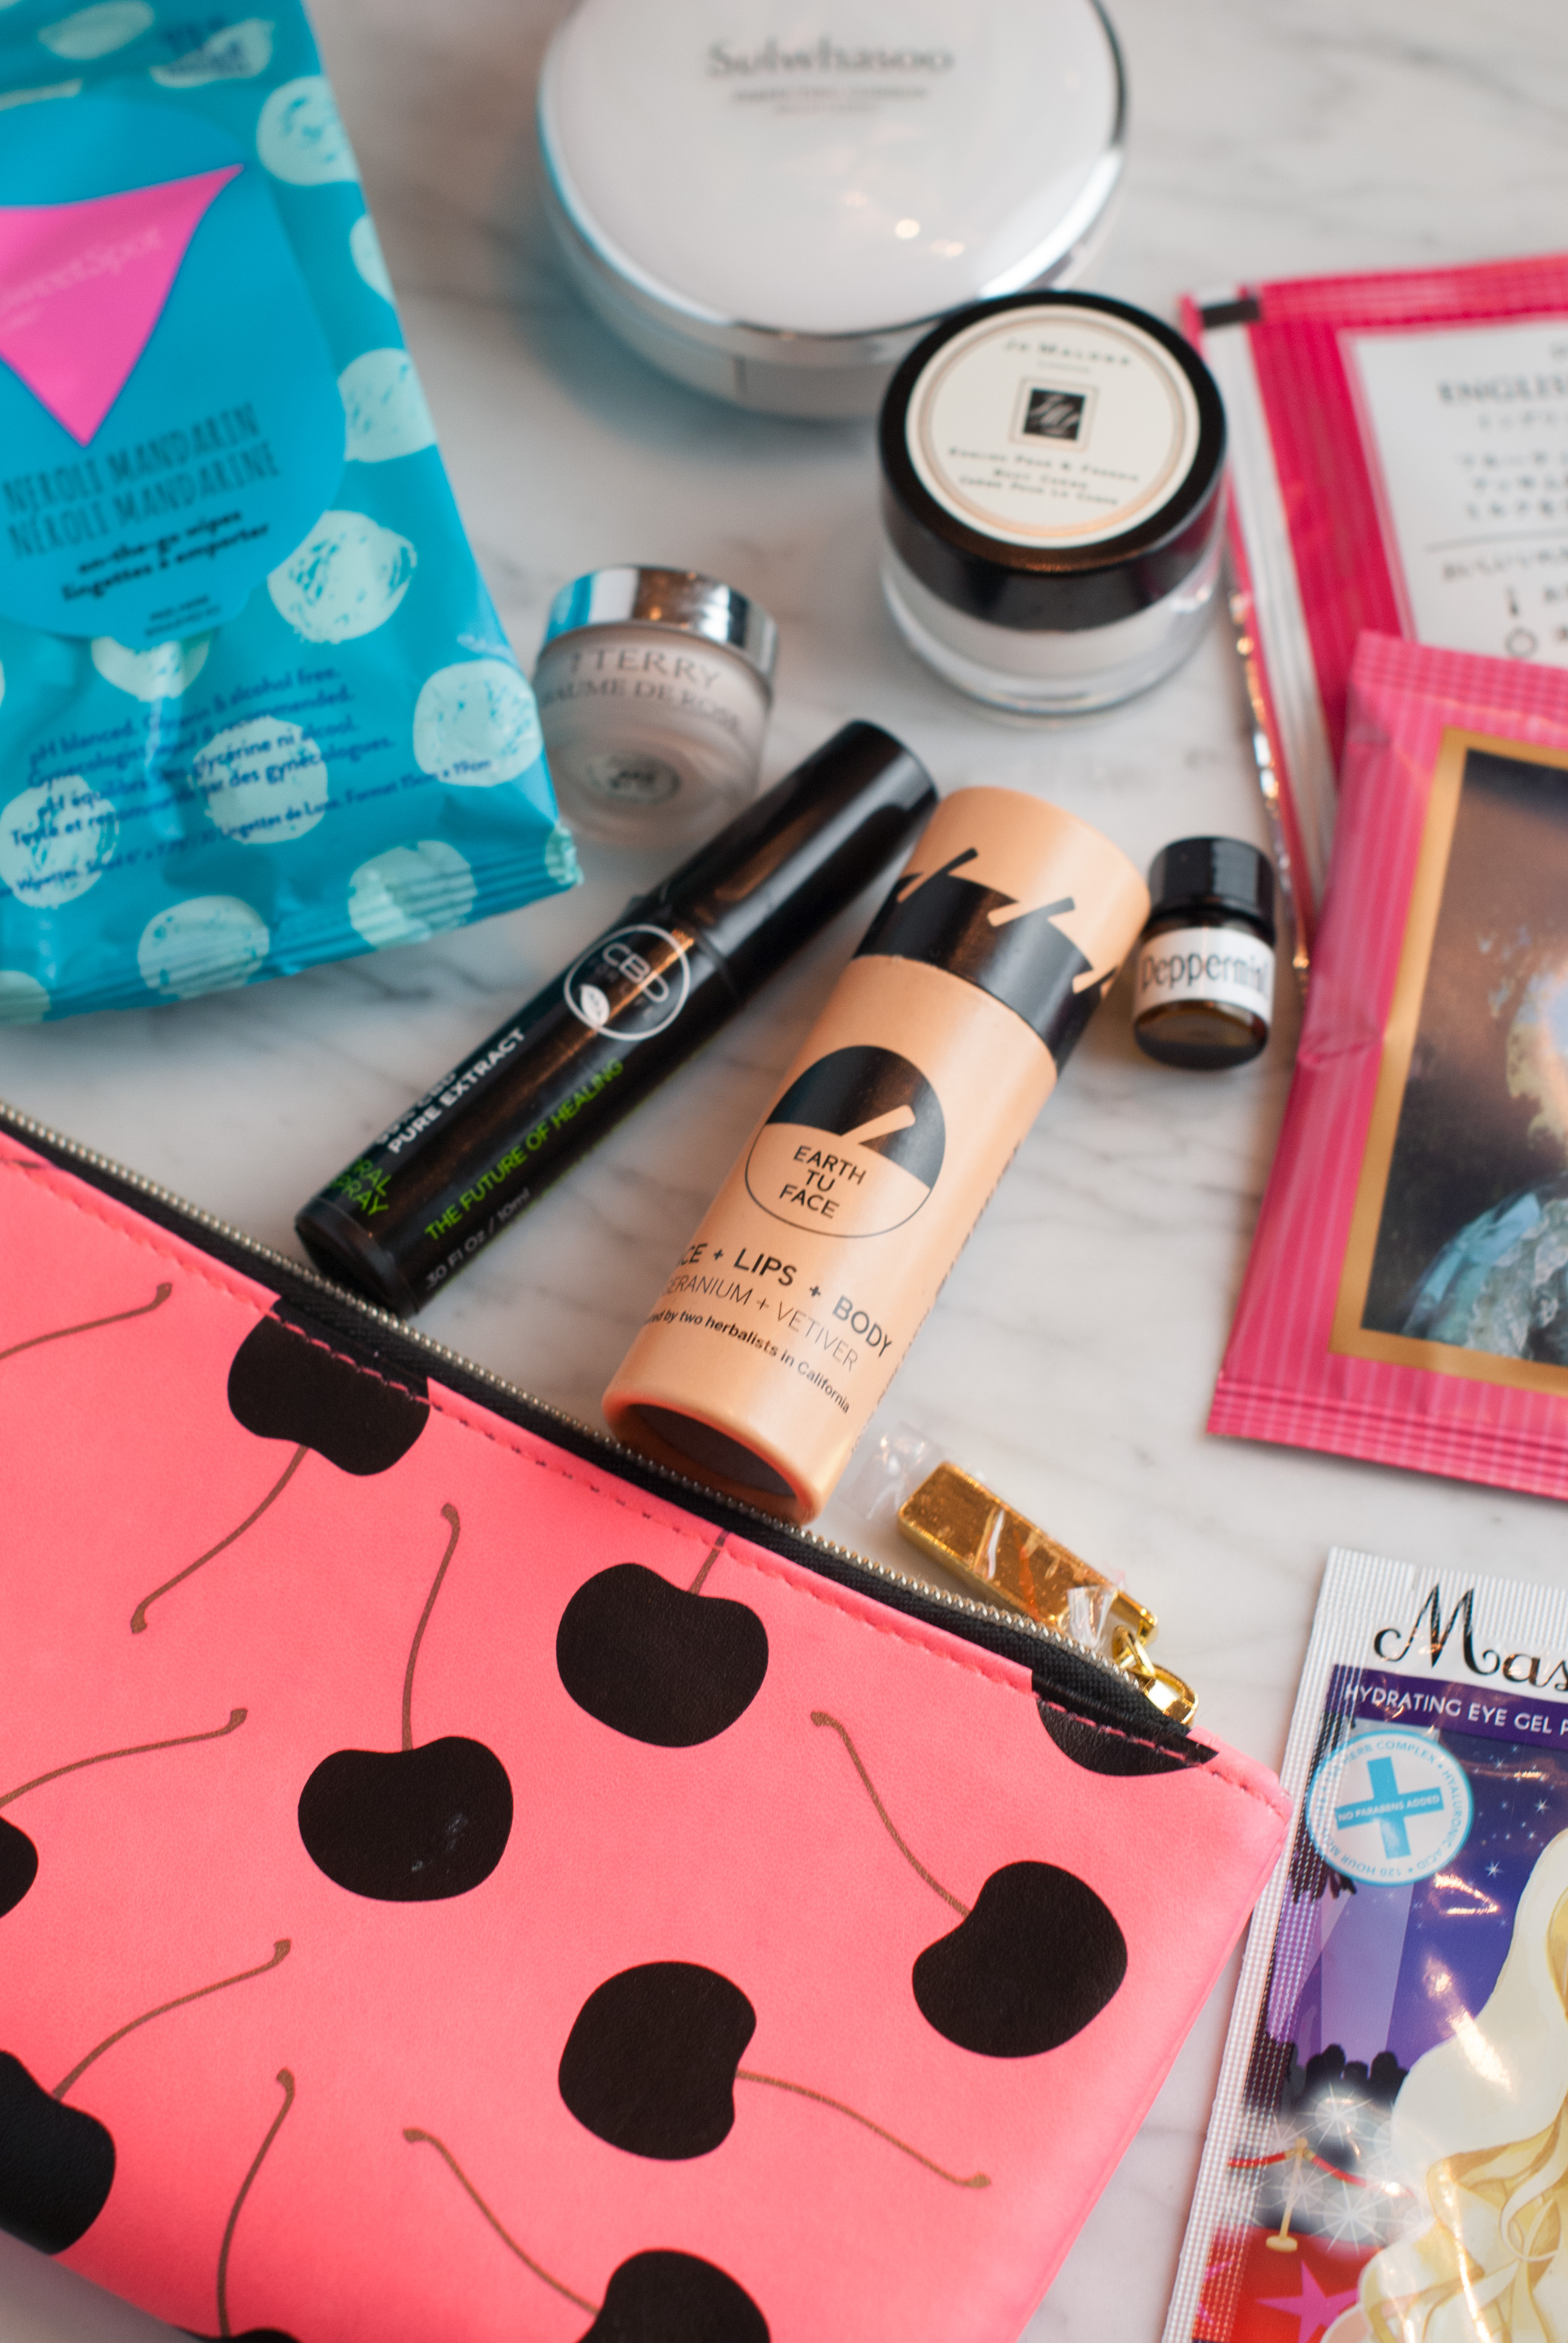 What's In My Travel Bag... Sweetspot Labs, MaskerAide... - My Favorite Carry On Essentials featured by popular California beauty blogger, Haute Beauty Guide